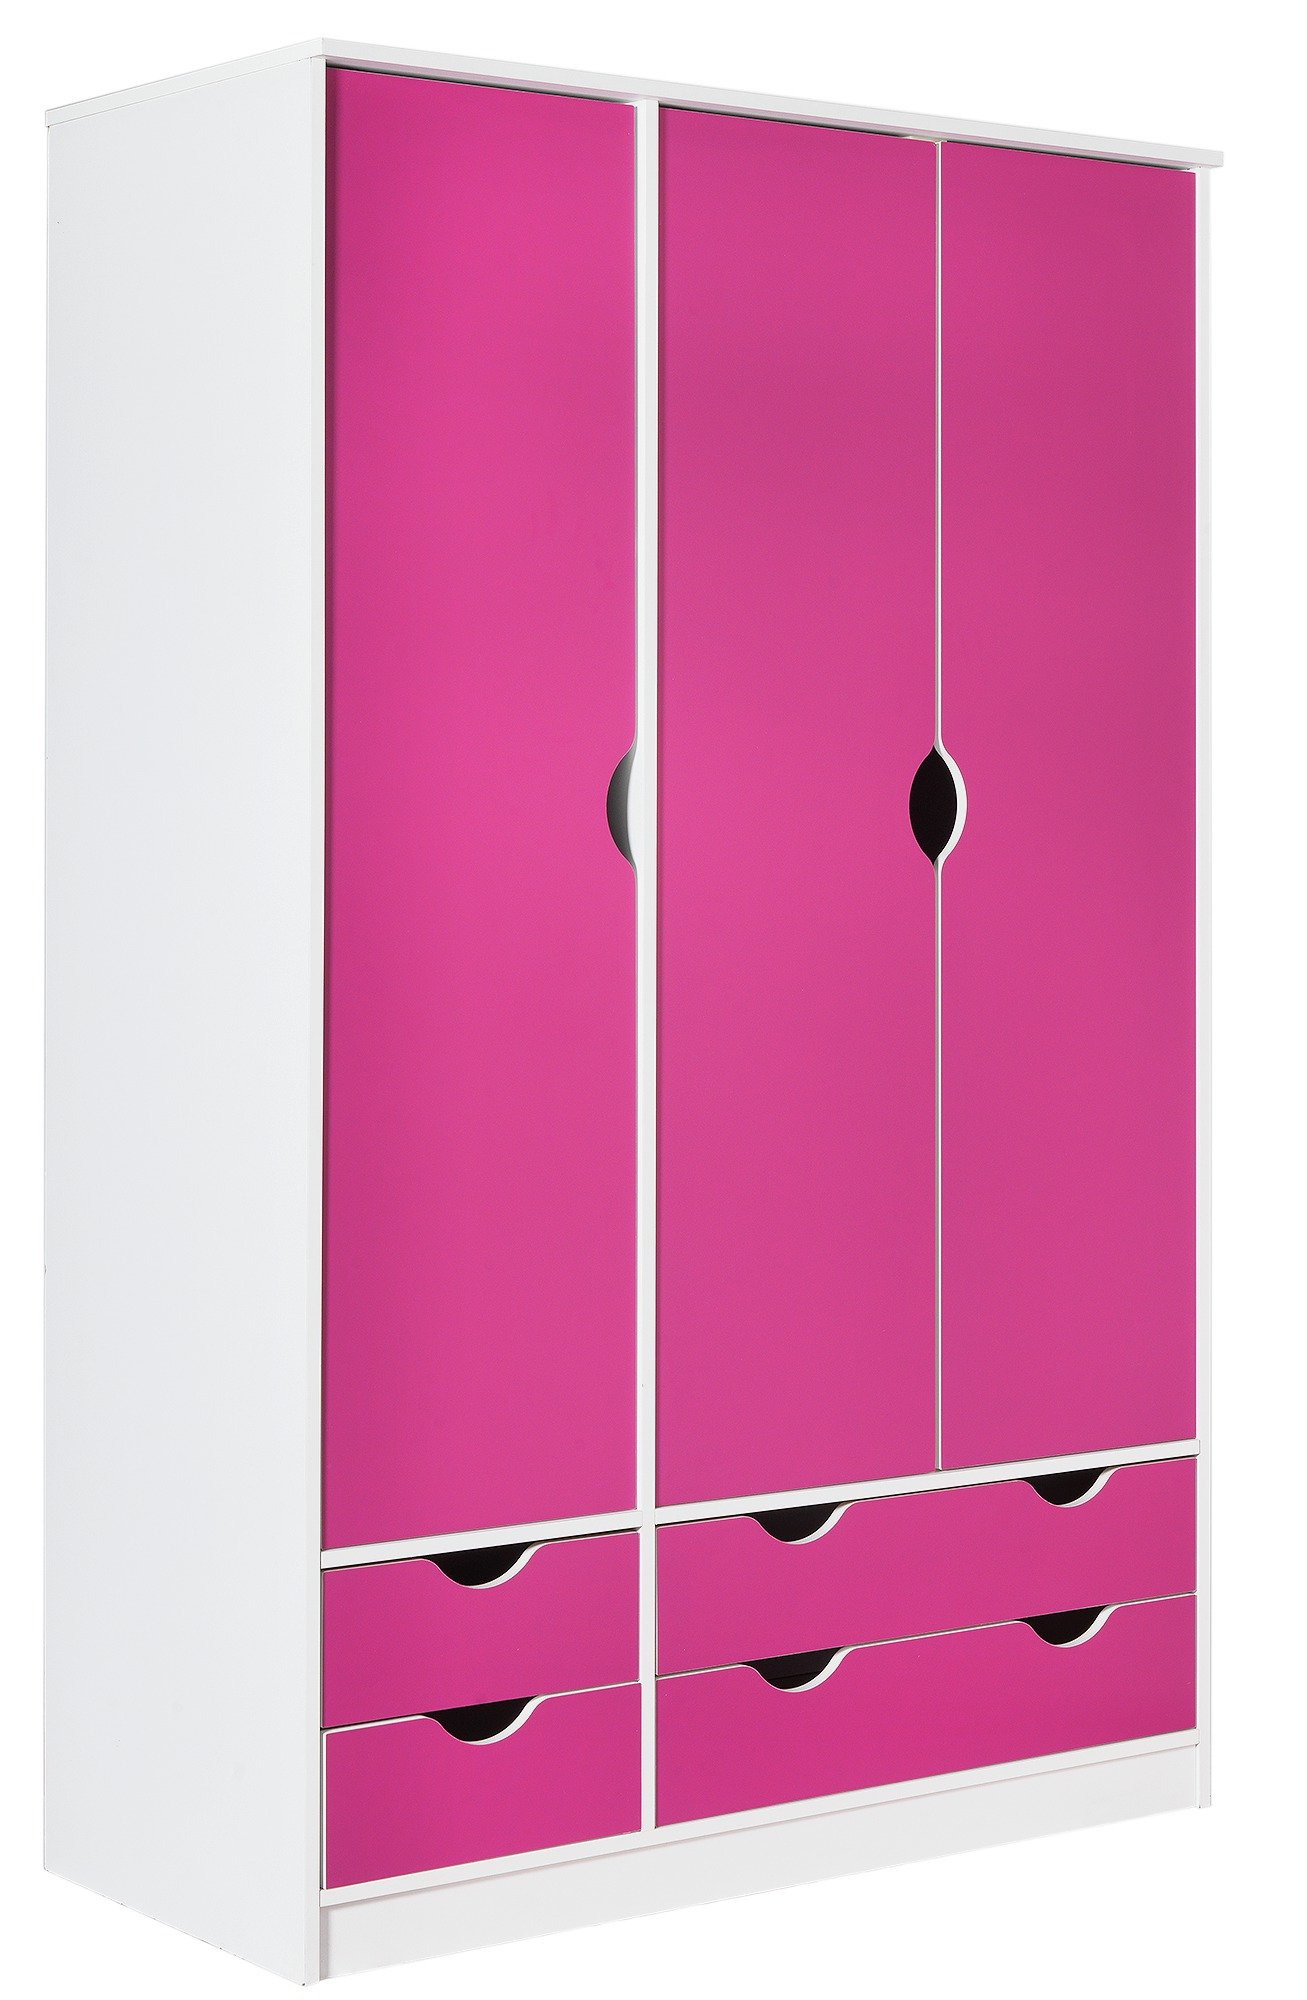 Pink Wardrobes Furniture Sales Today